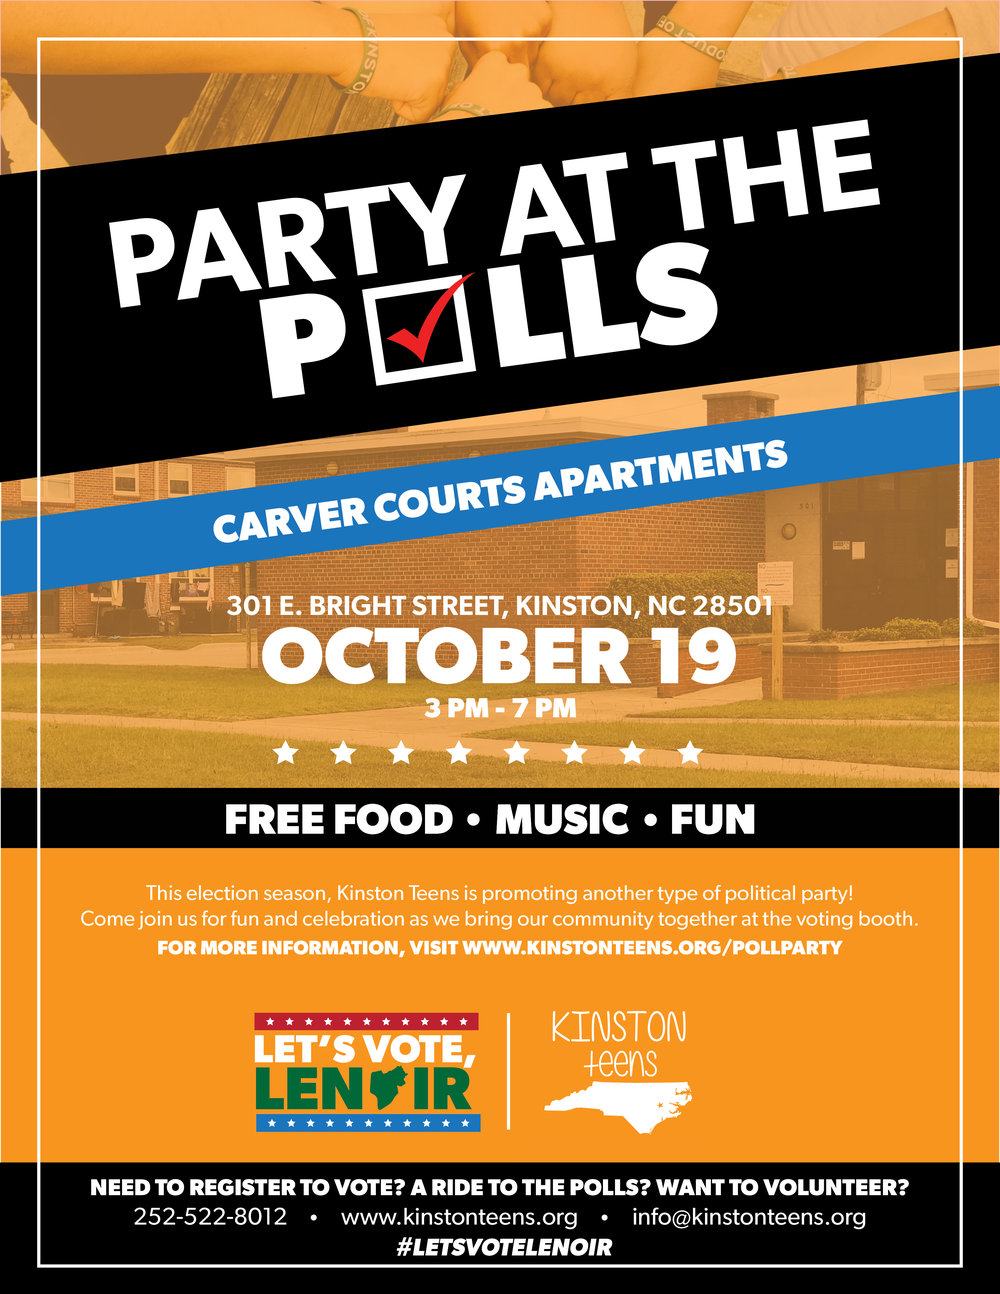 Party at the Polls October 19